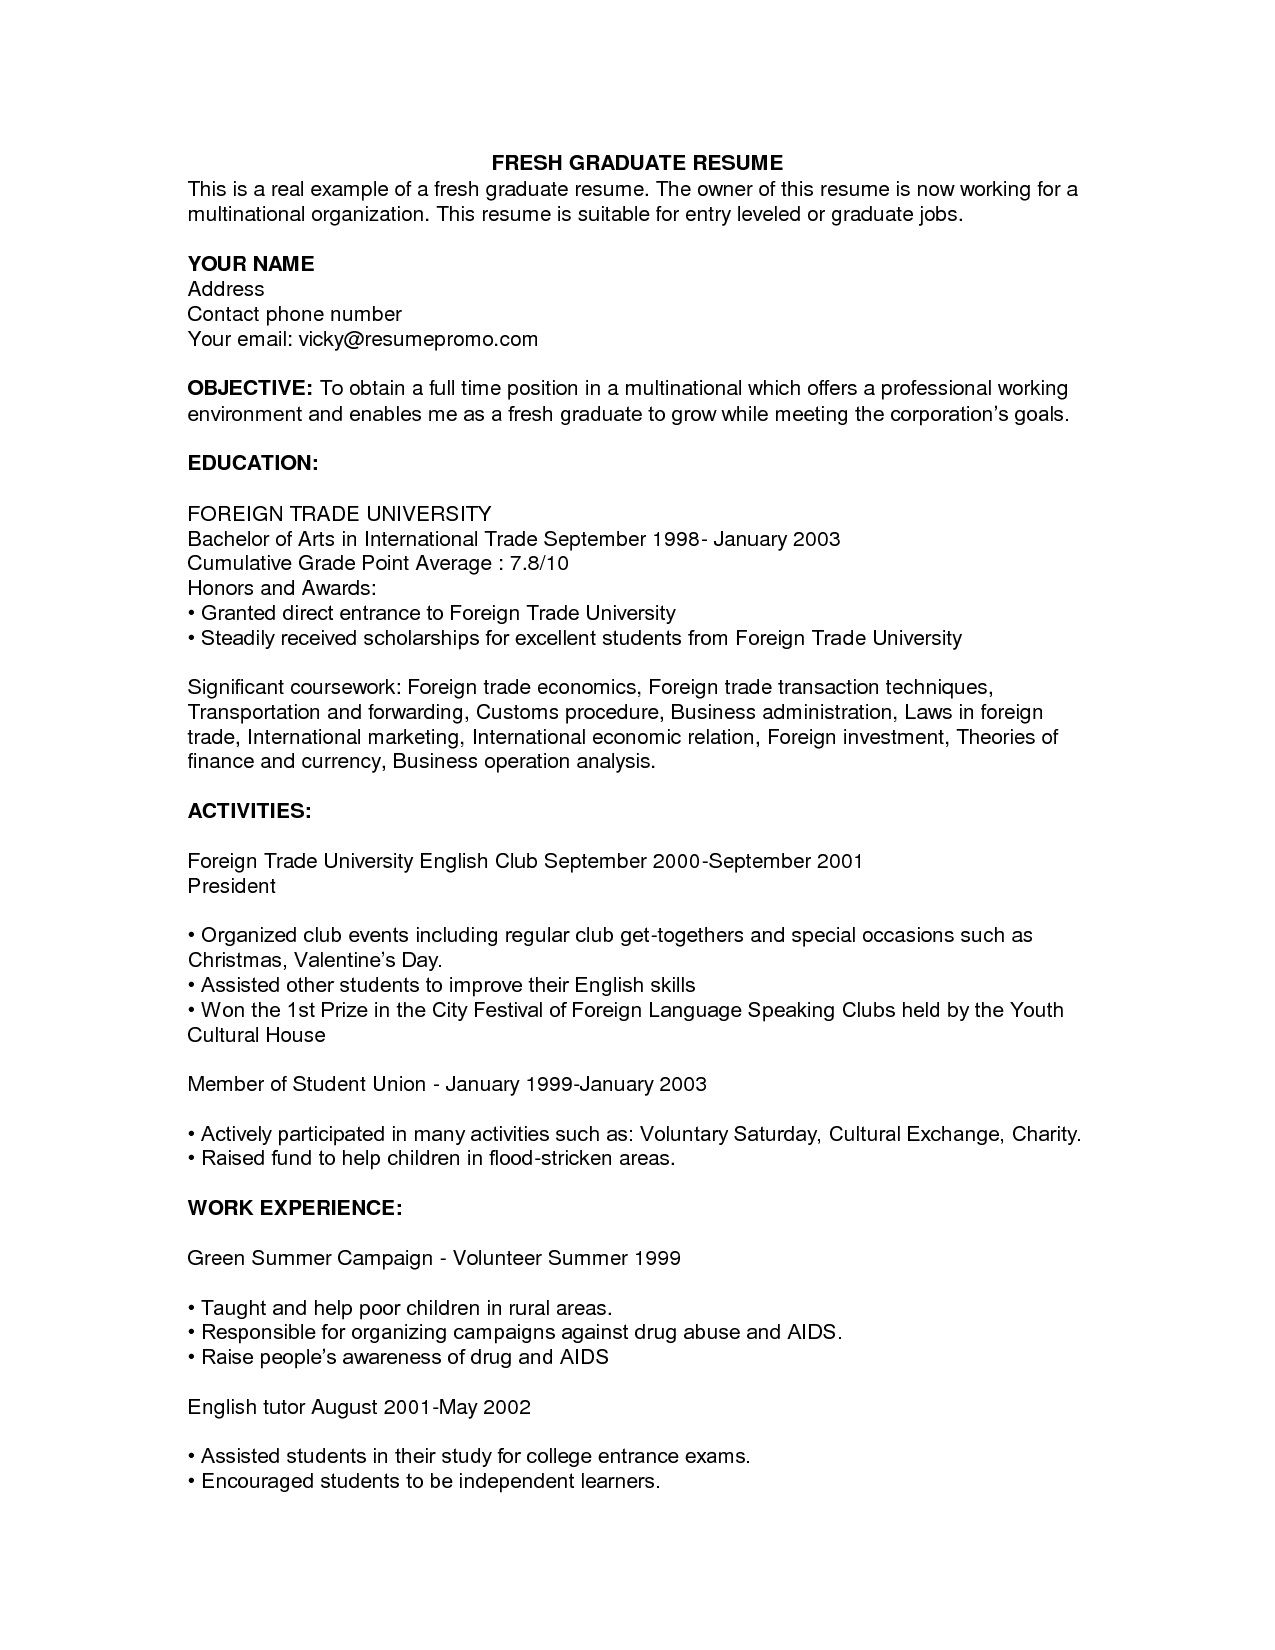 Job resume templates career you need correct more forward fresh job resume templates career you need correct more forward fresh graduate sample home design idea pinterest job resume template job resume and job yelopaper Image collections